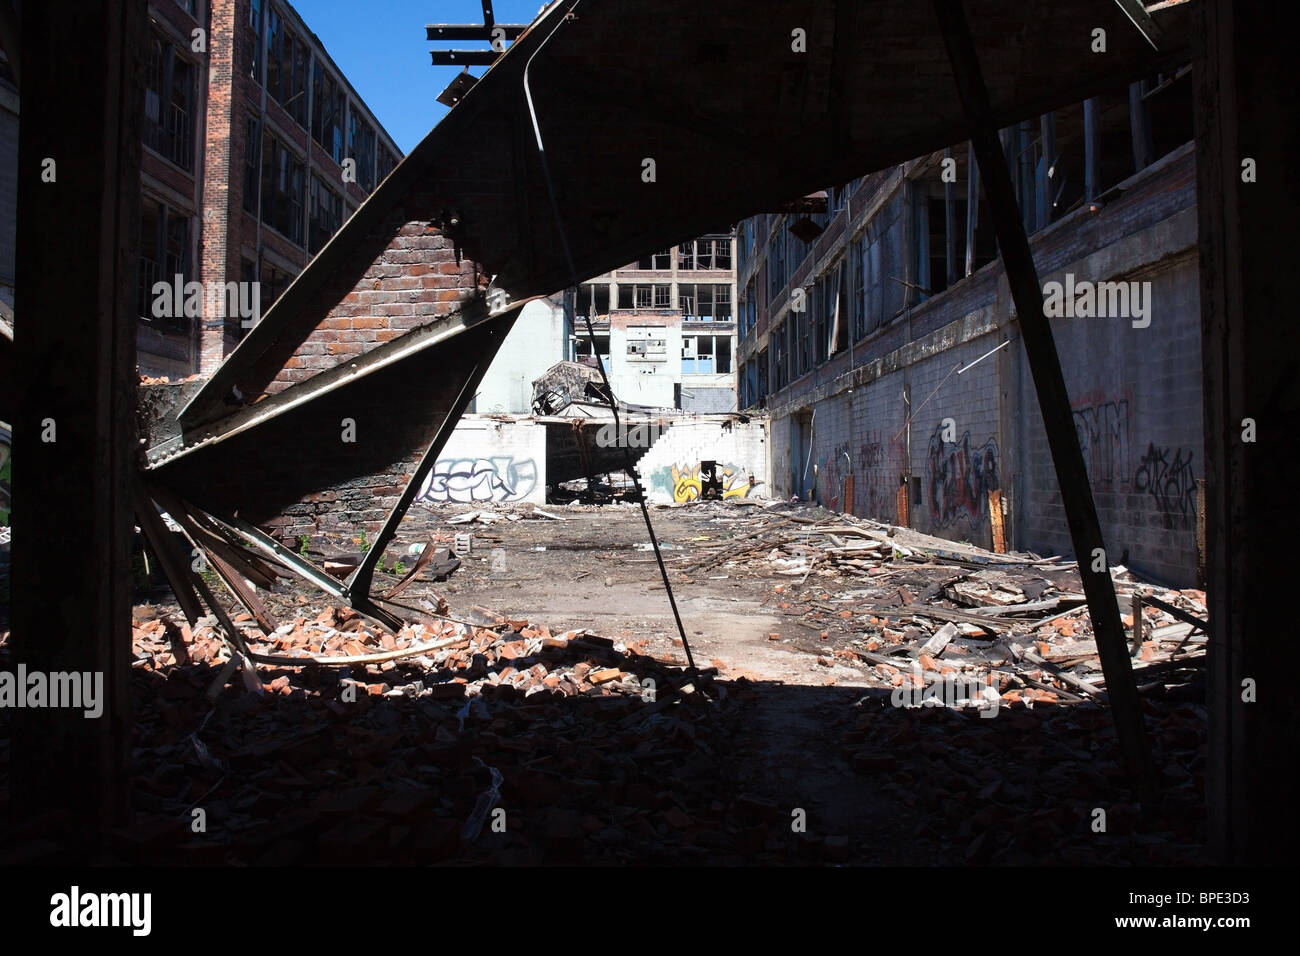 Abandoned Packard automobile plant in Detroit, Michigan, USA Stock Photo